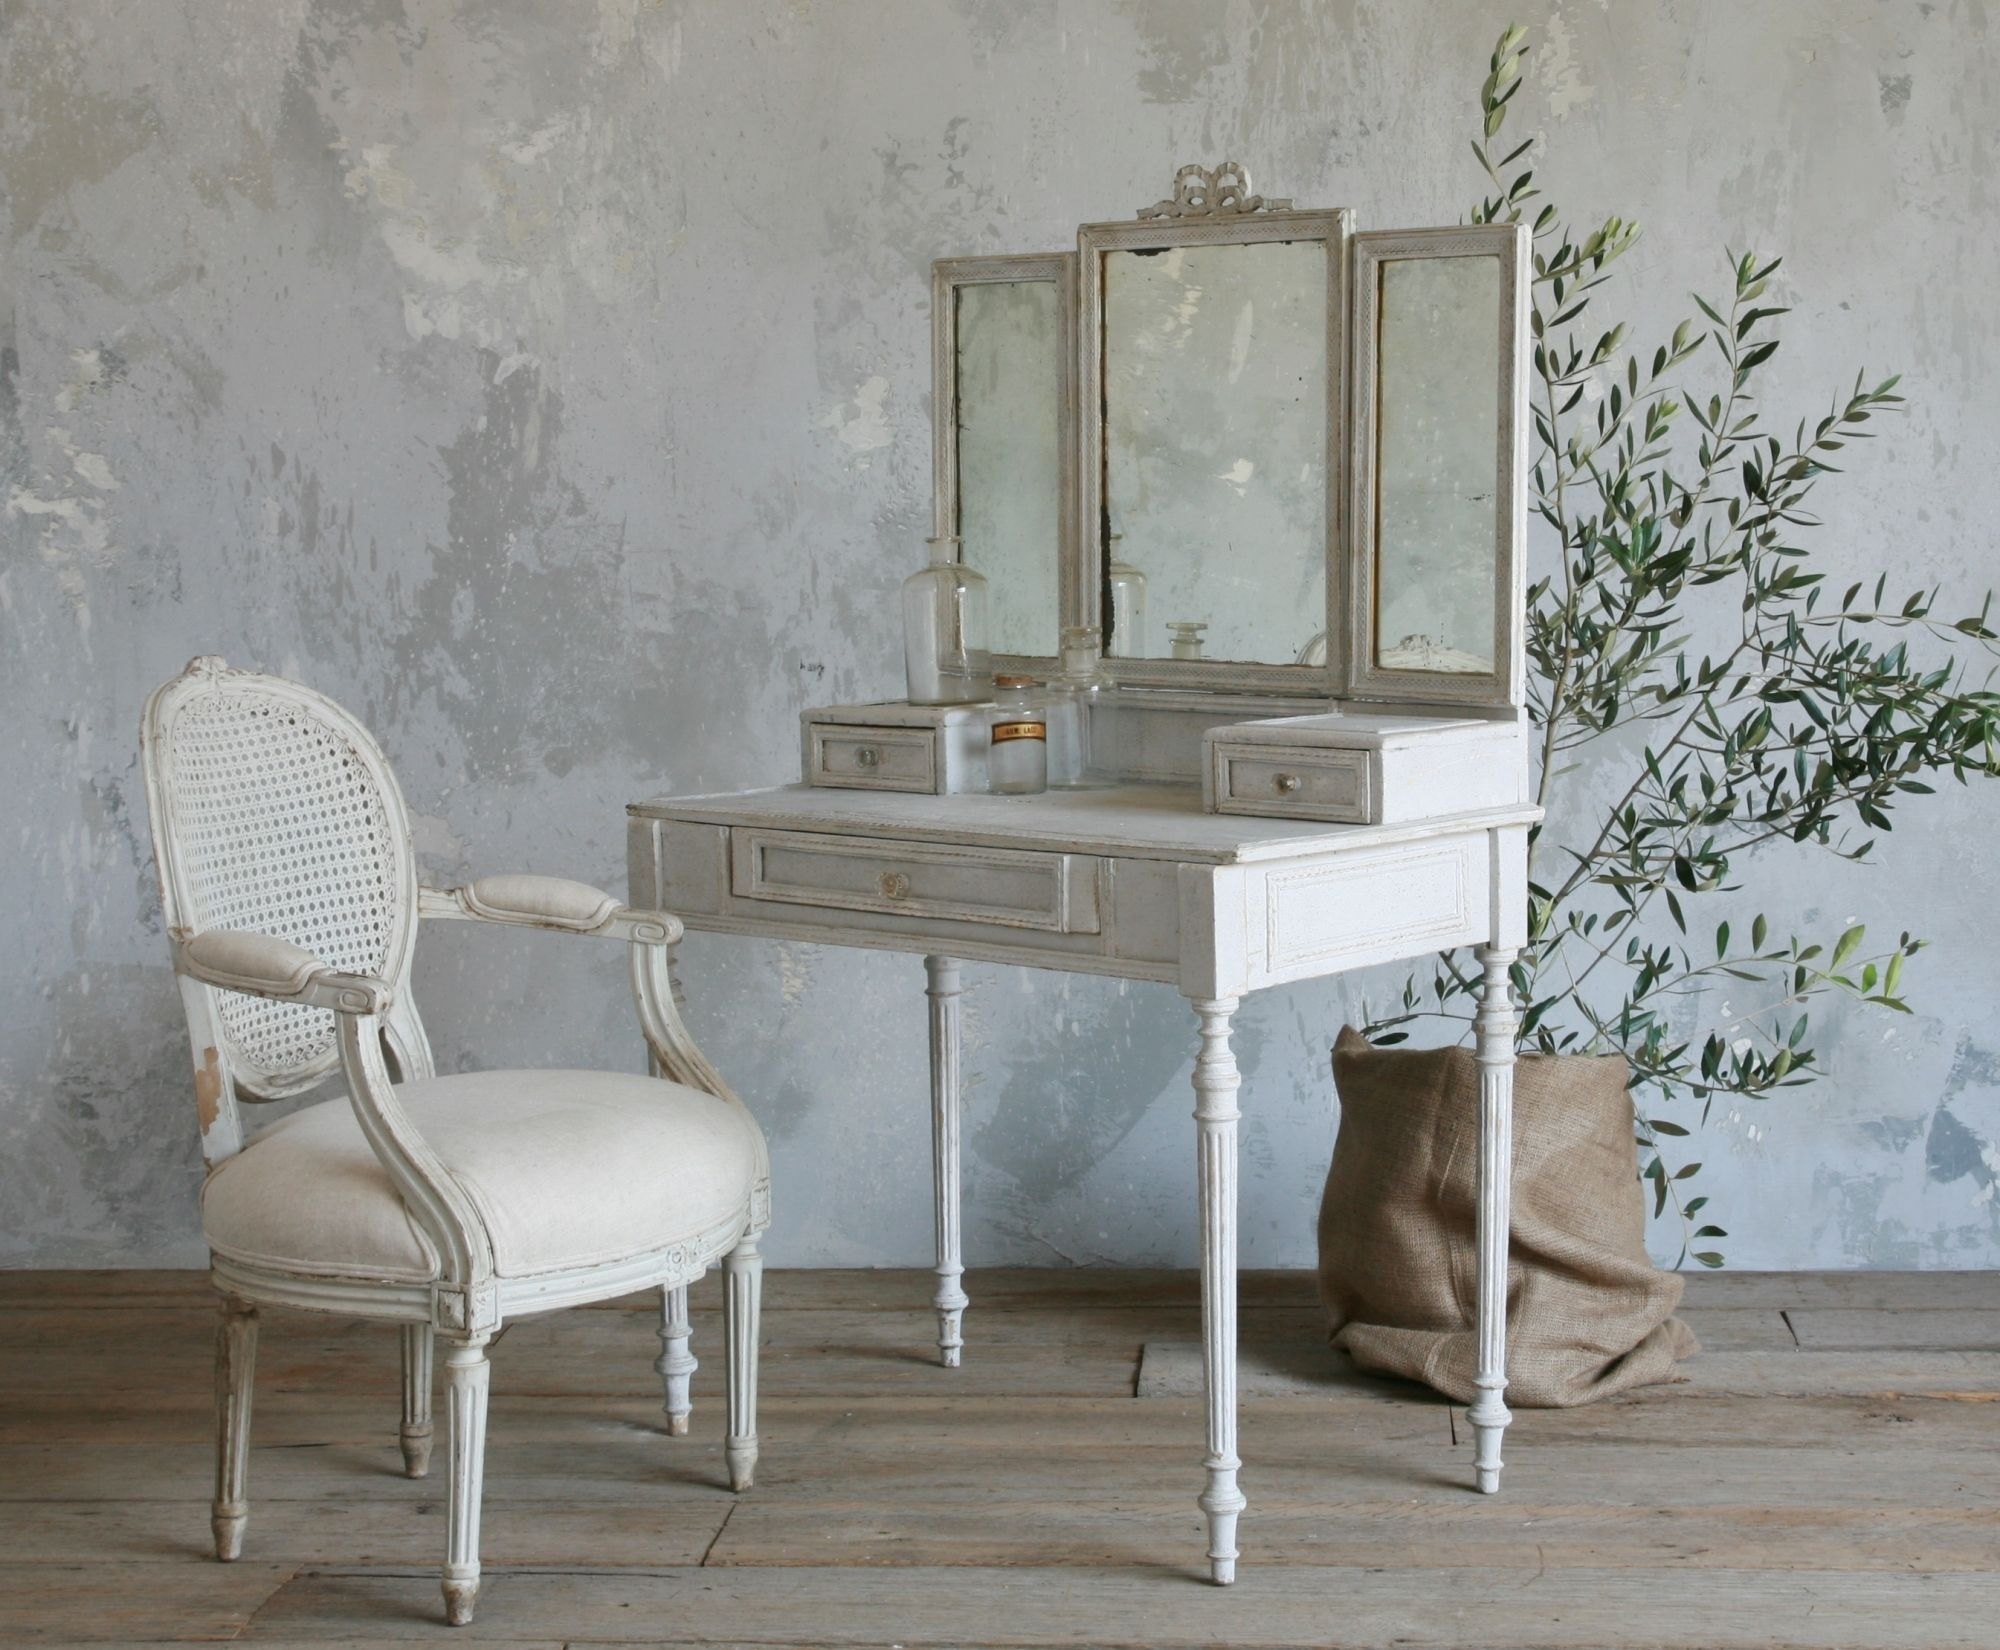 Old And Vintage French Style Small Vanity Table Painted With White Pertaining To Vintage French Mirrors (View 9 of 15)